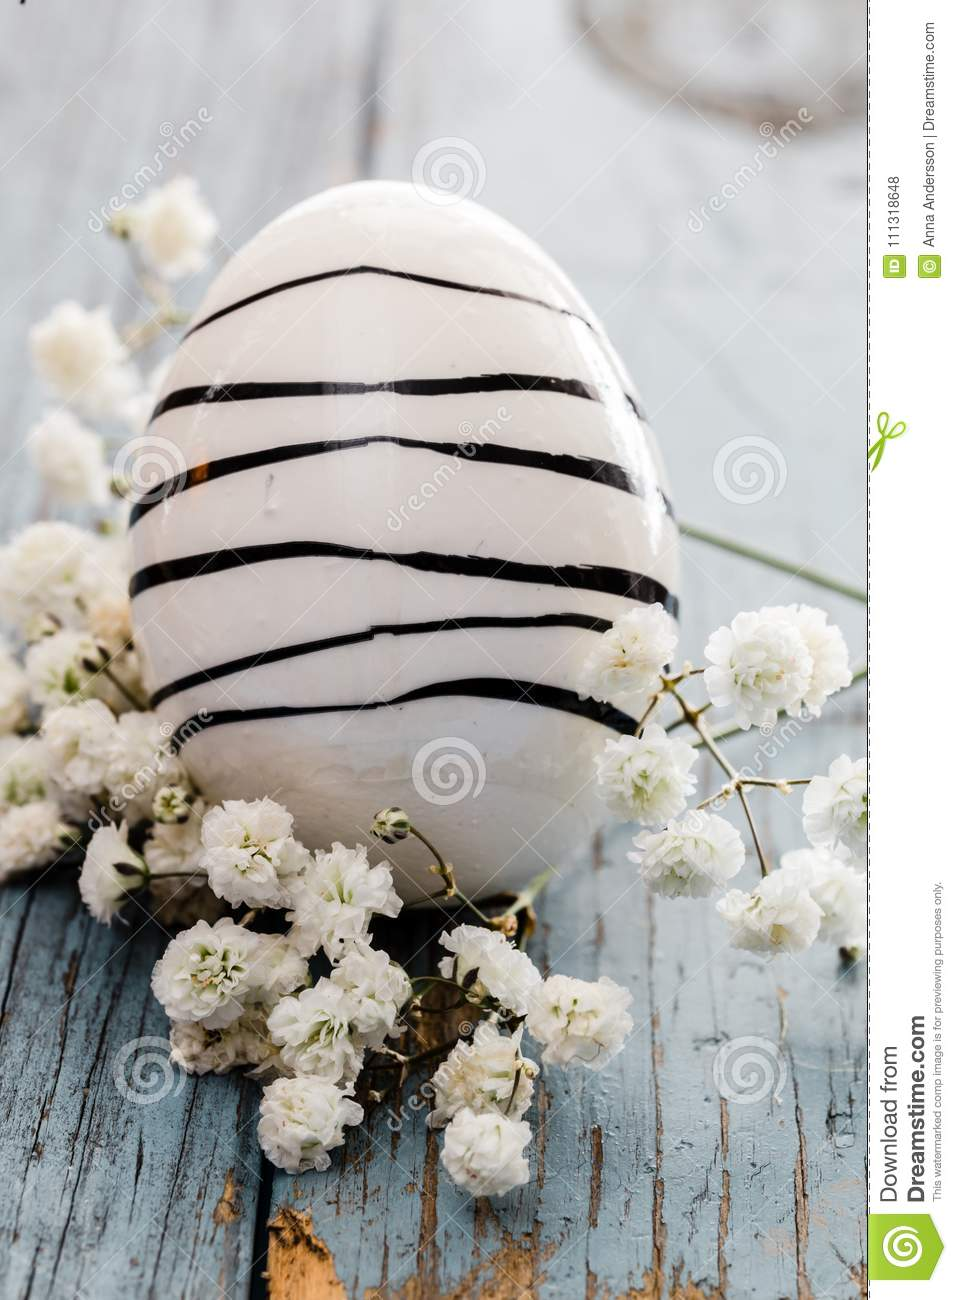 Painted easter egg with black stripes on blue wooden table and with white flowers